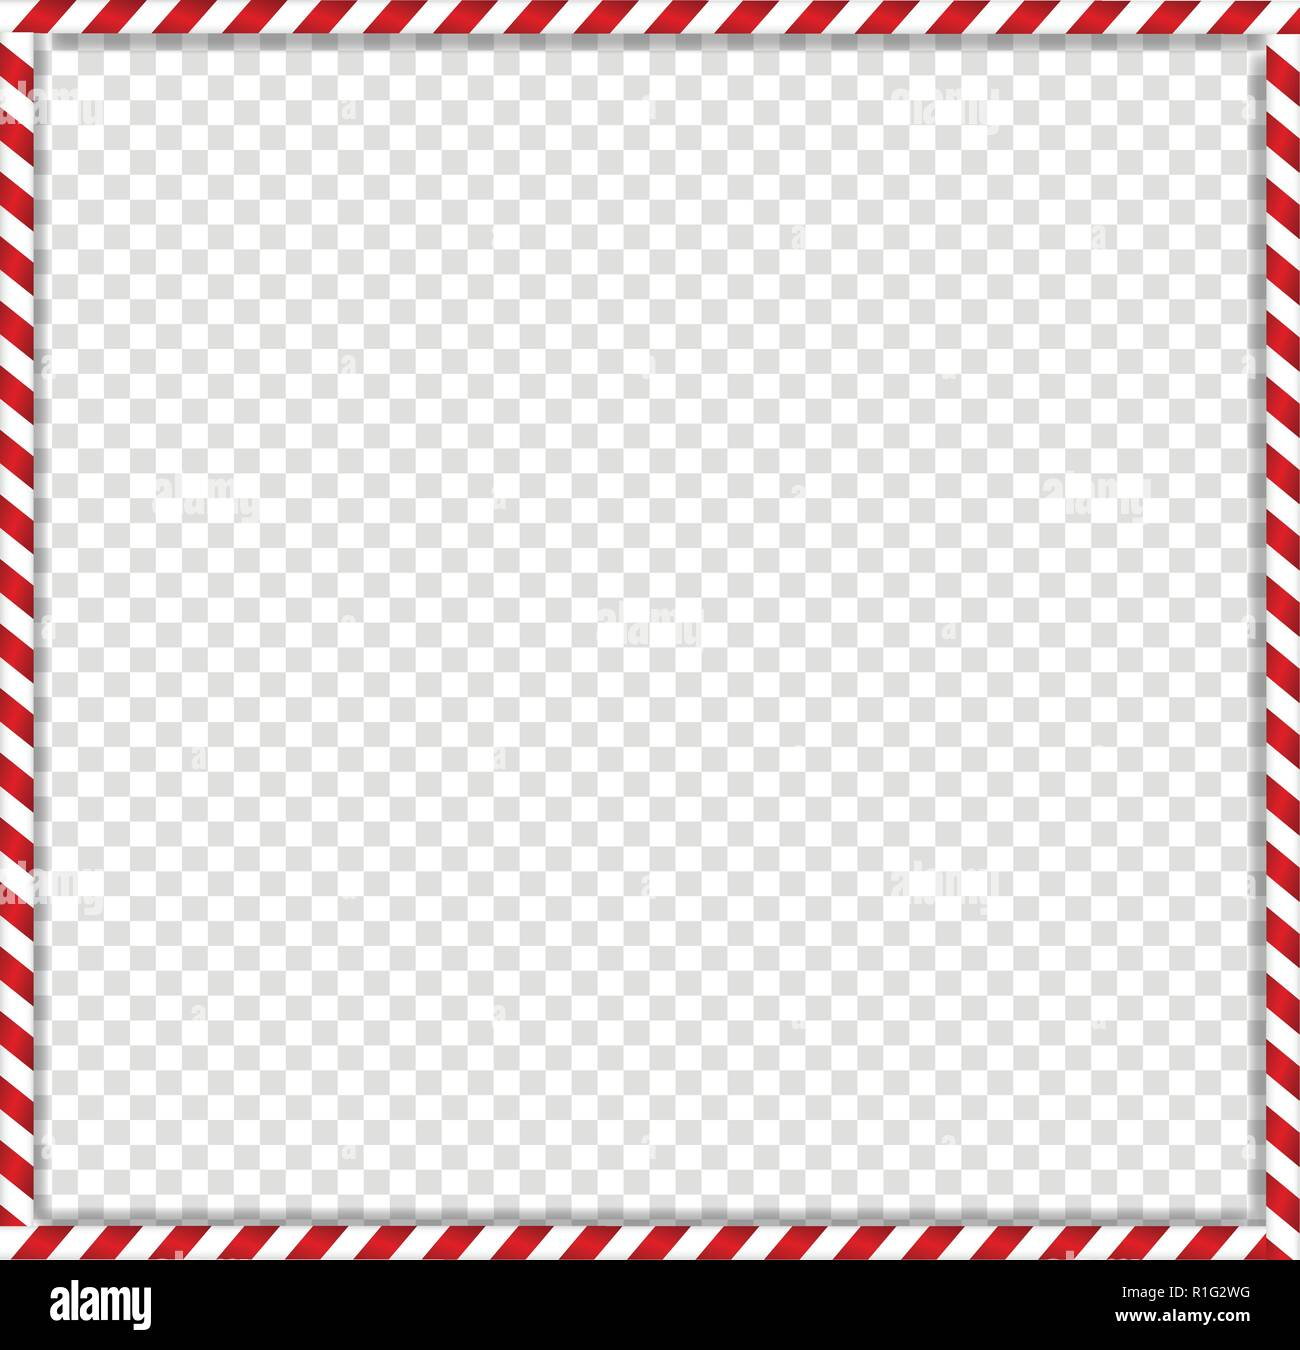 christmas new year square cane photo frame with red and white striped lollipop candy pattern isolated on transparent background holiday xmas border